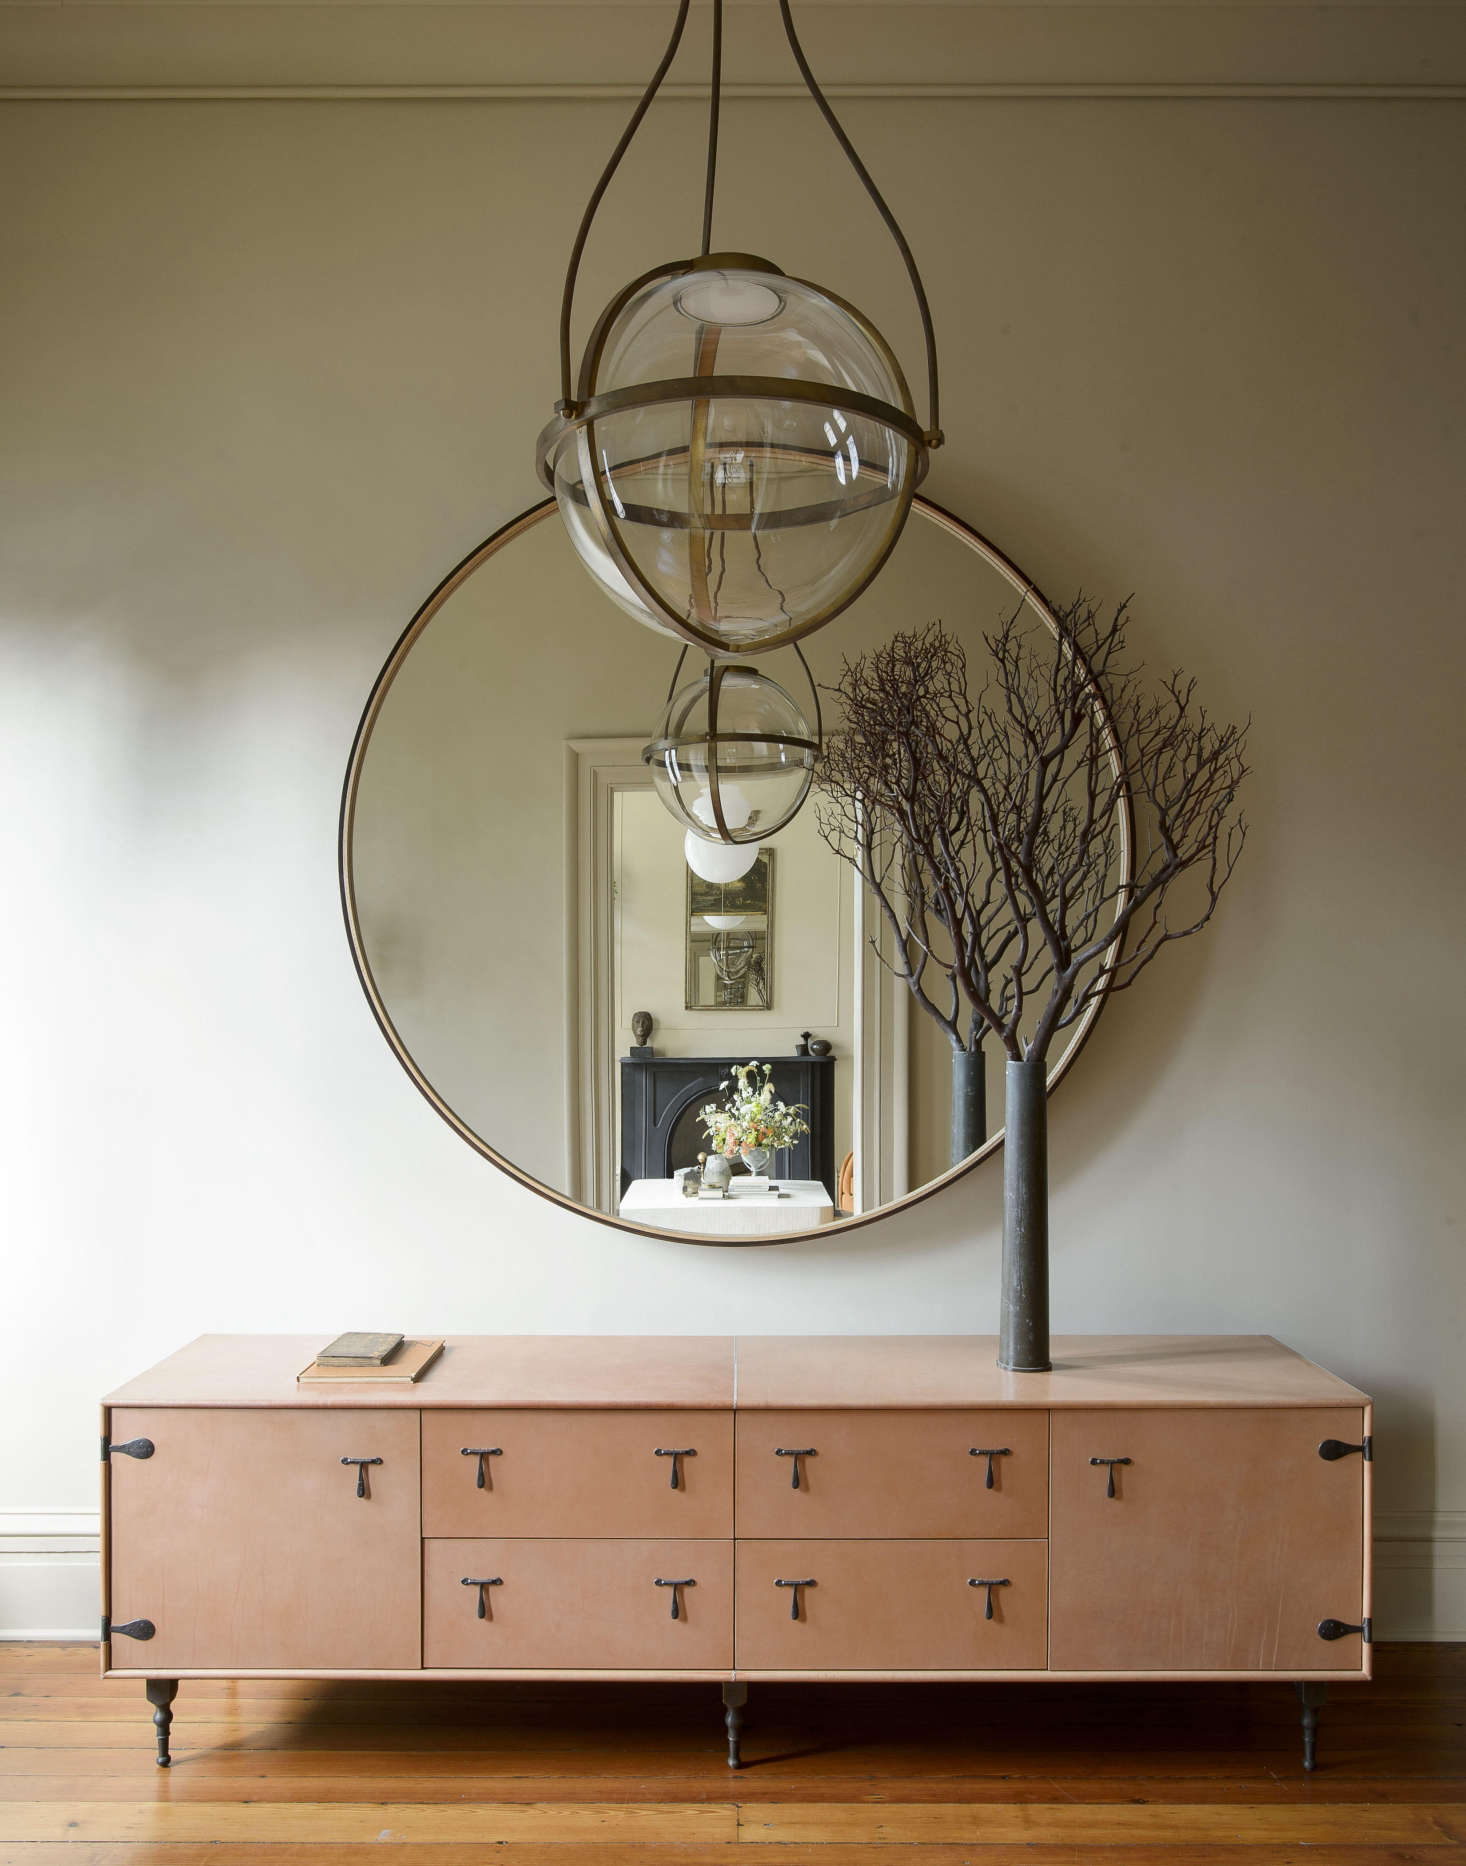 TheLeather Mid Credenza and theLeather Round Mirror are from BDDW in NYC. The hallway is illuminated by a Kensington Pendant in hewn brass, designed by Michael Amato for Urban Electric Co.